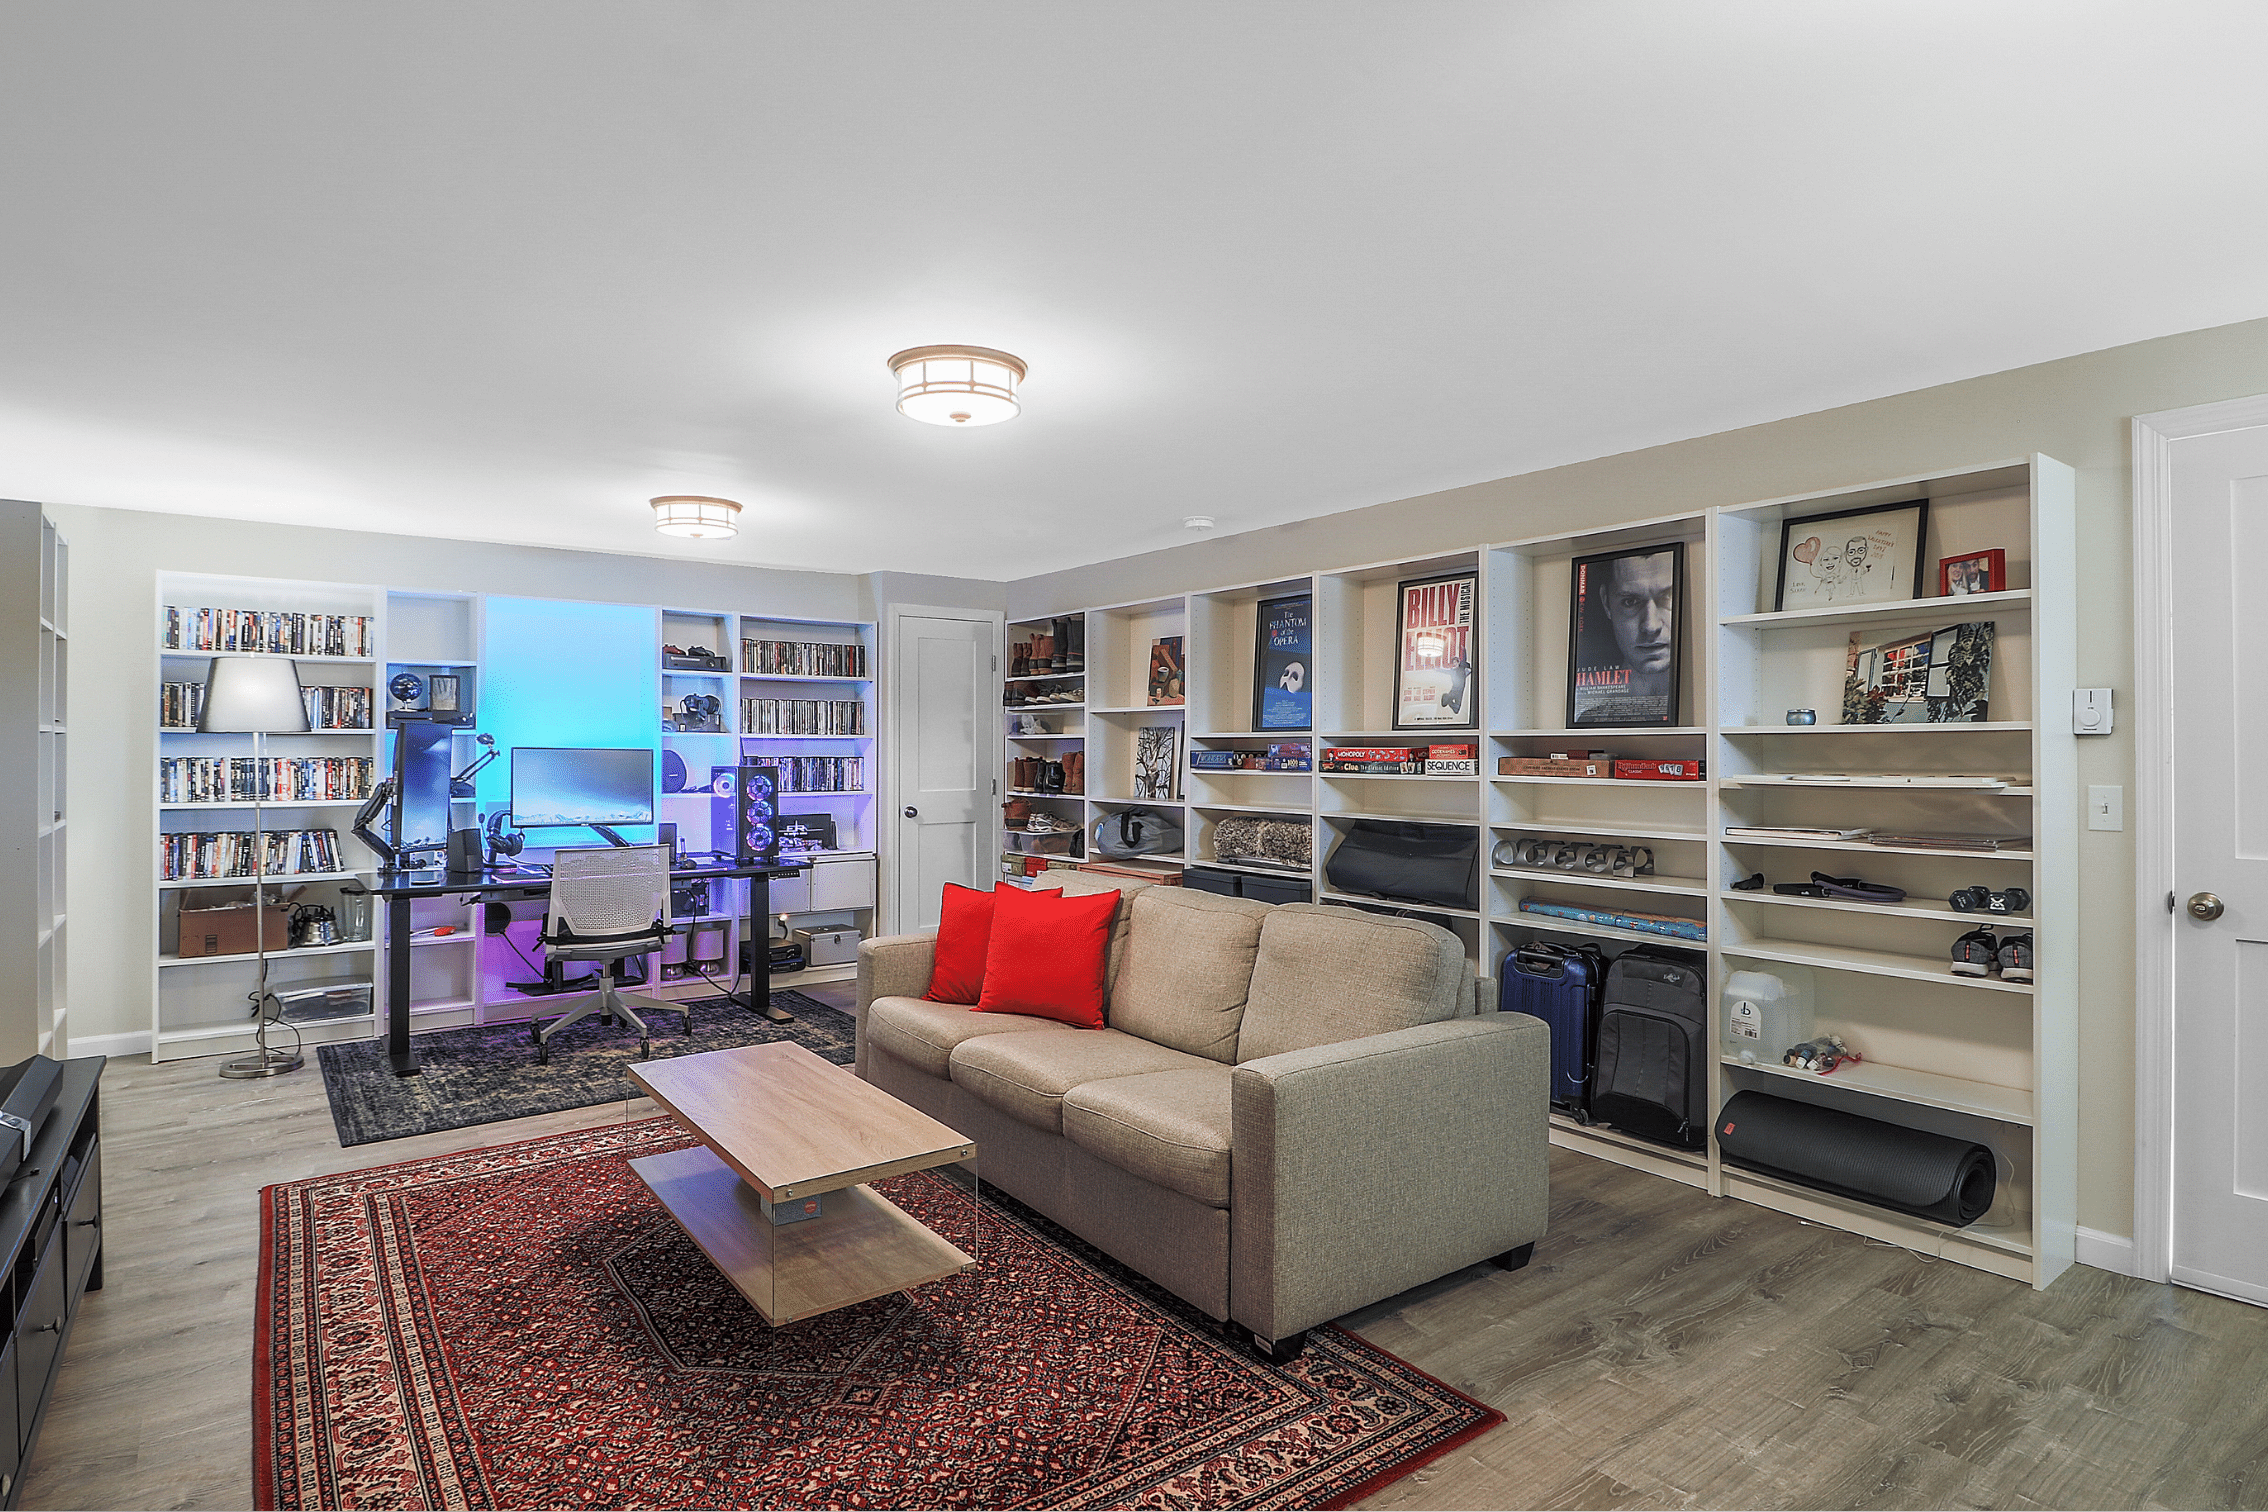 Finished Basement with Movie Theater Room And Library